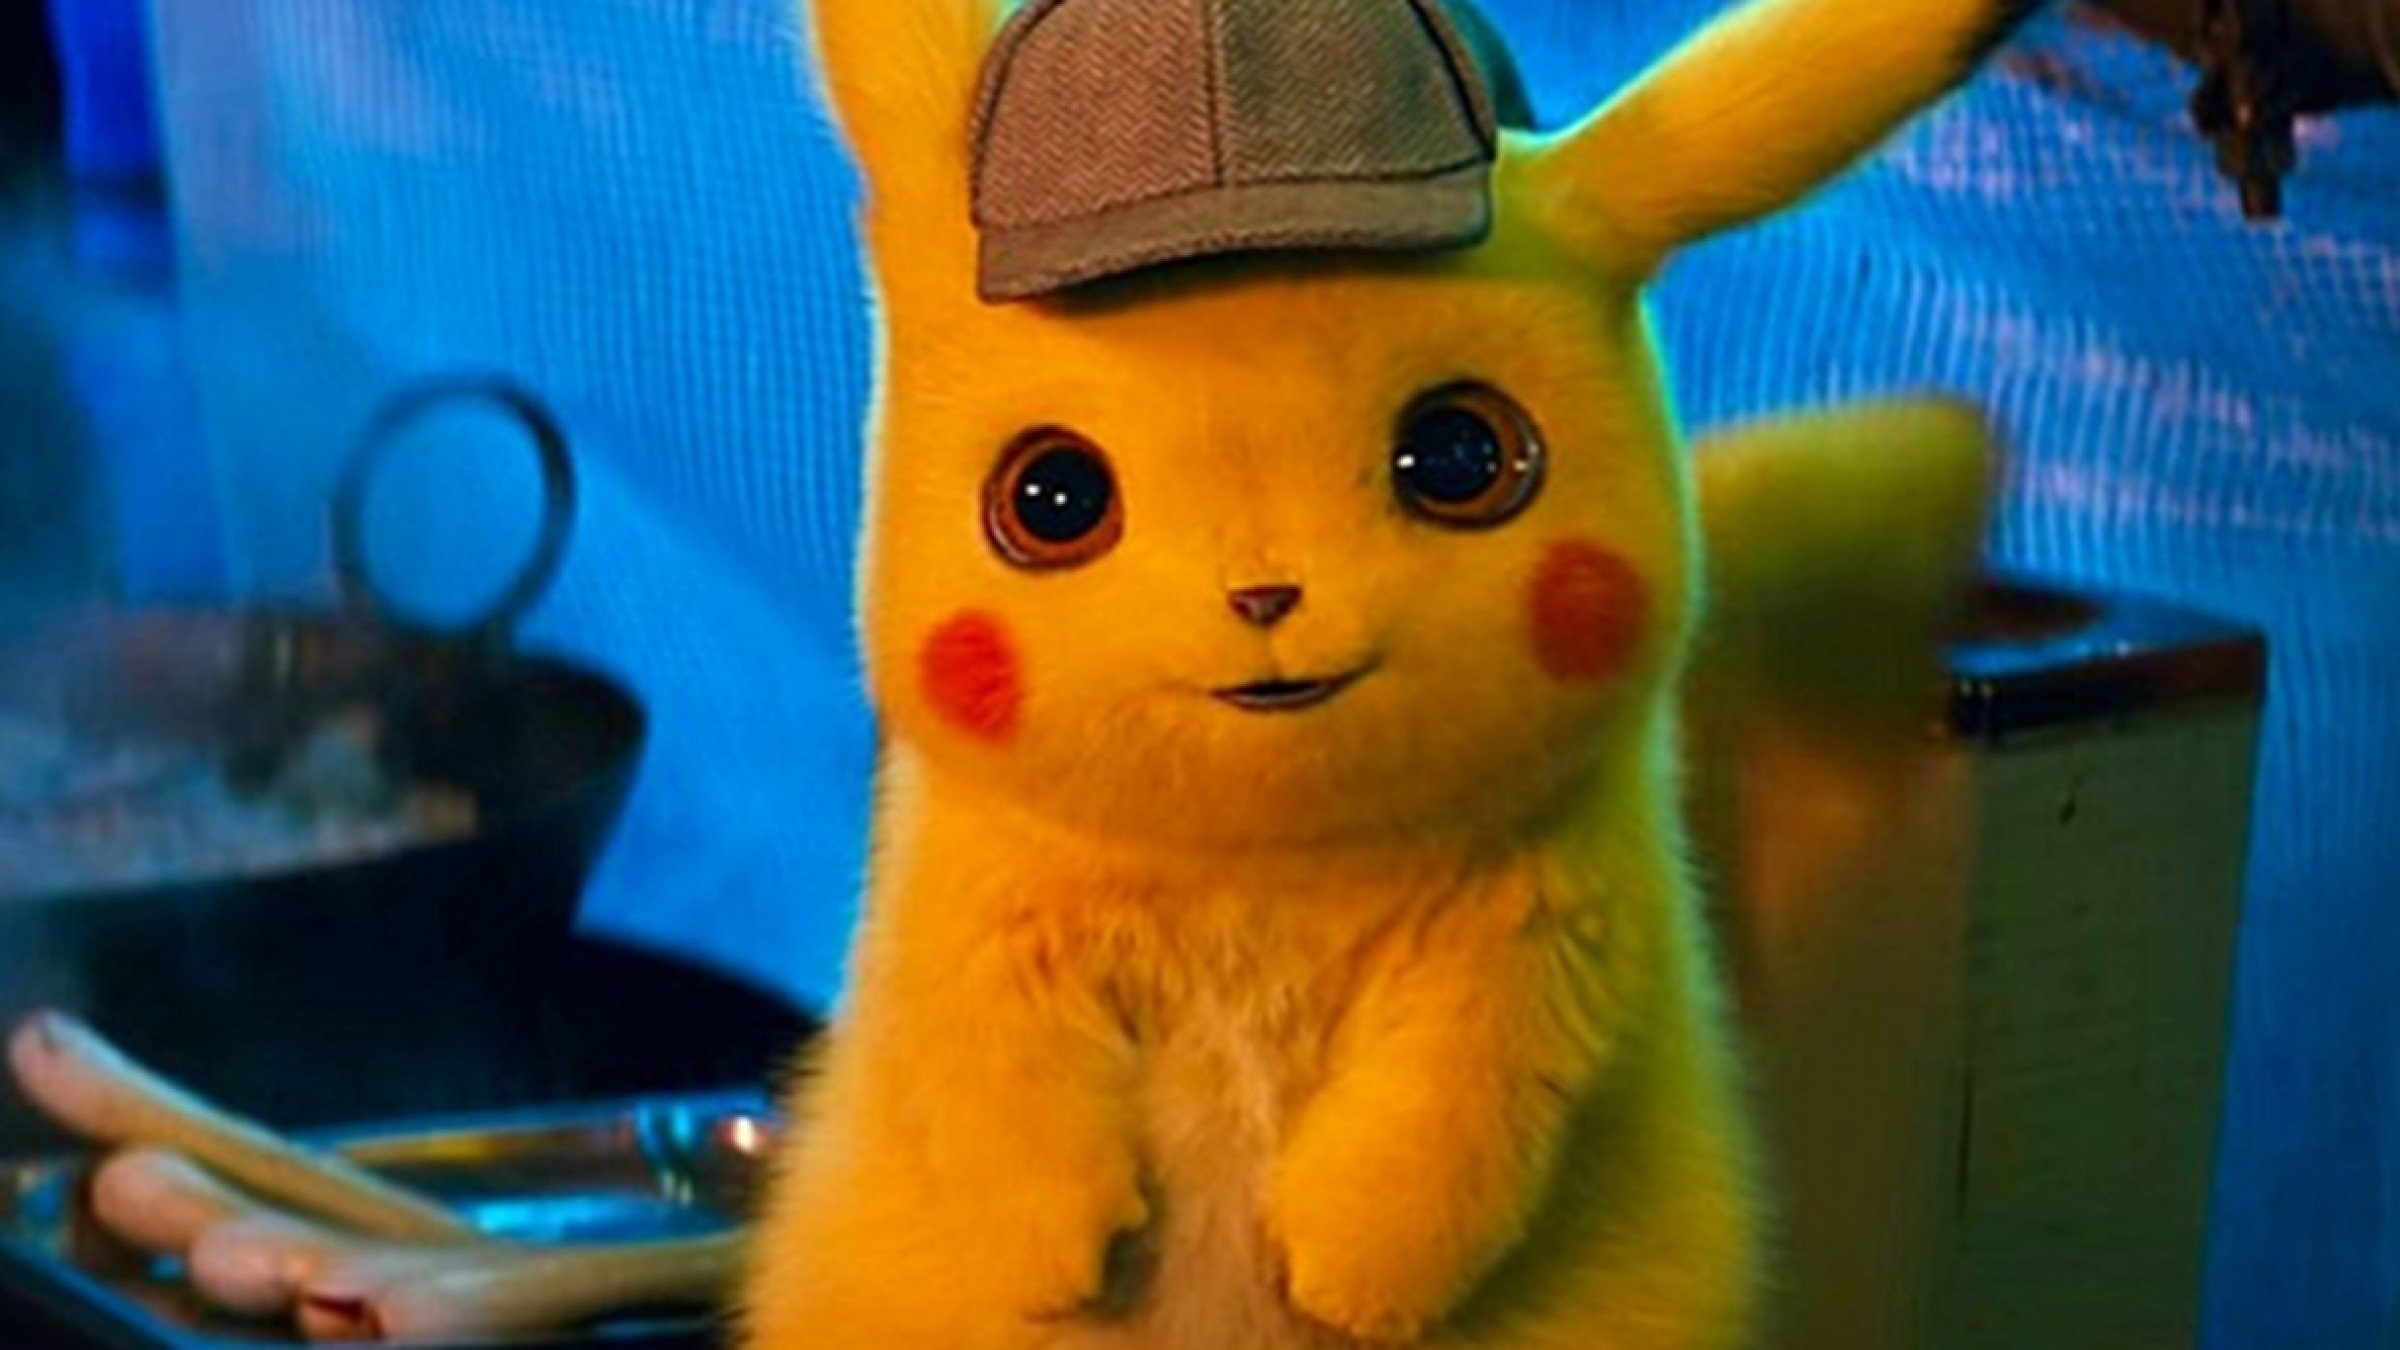 Detective Pikachu's global opening weekend tops $160 million